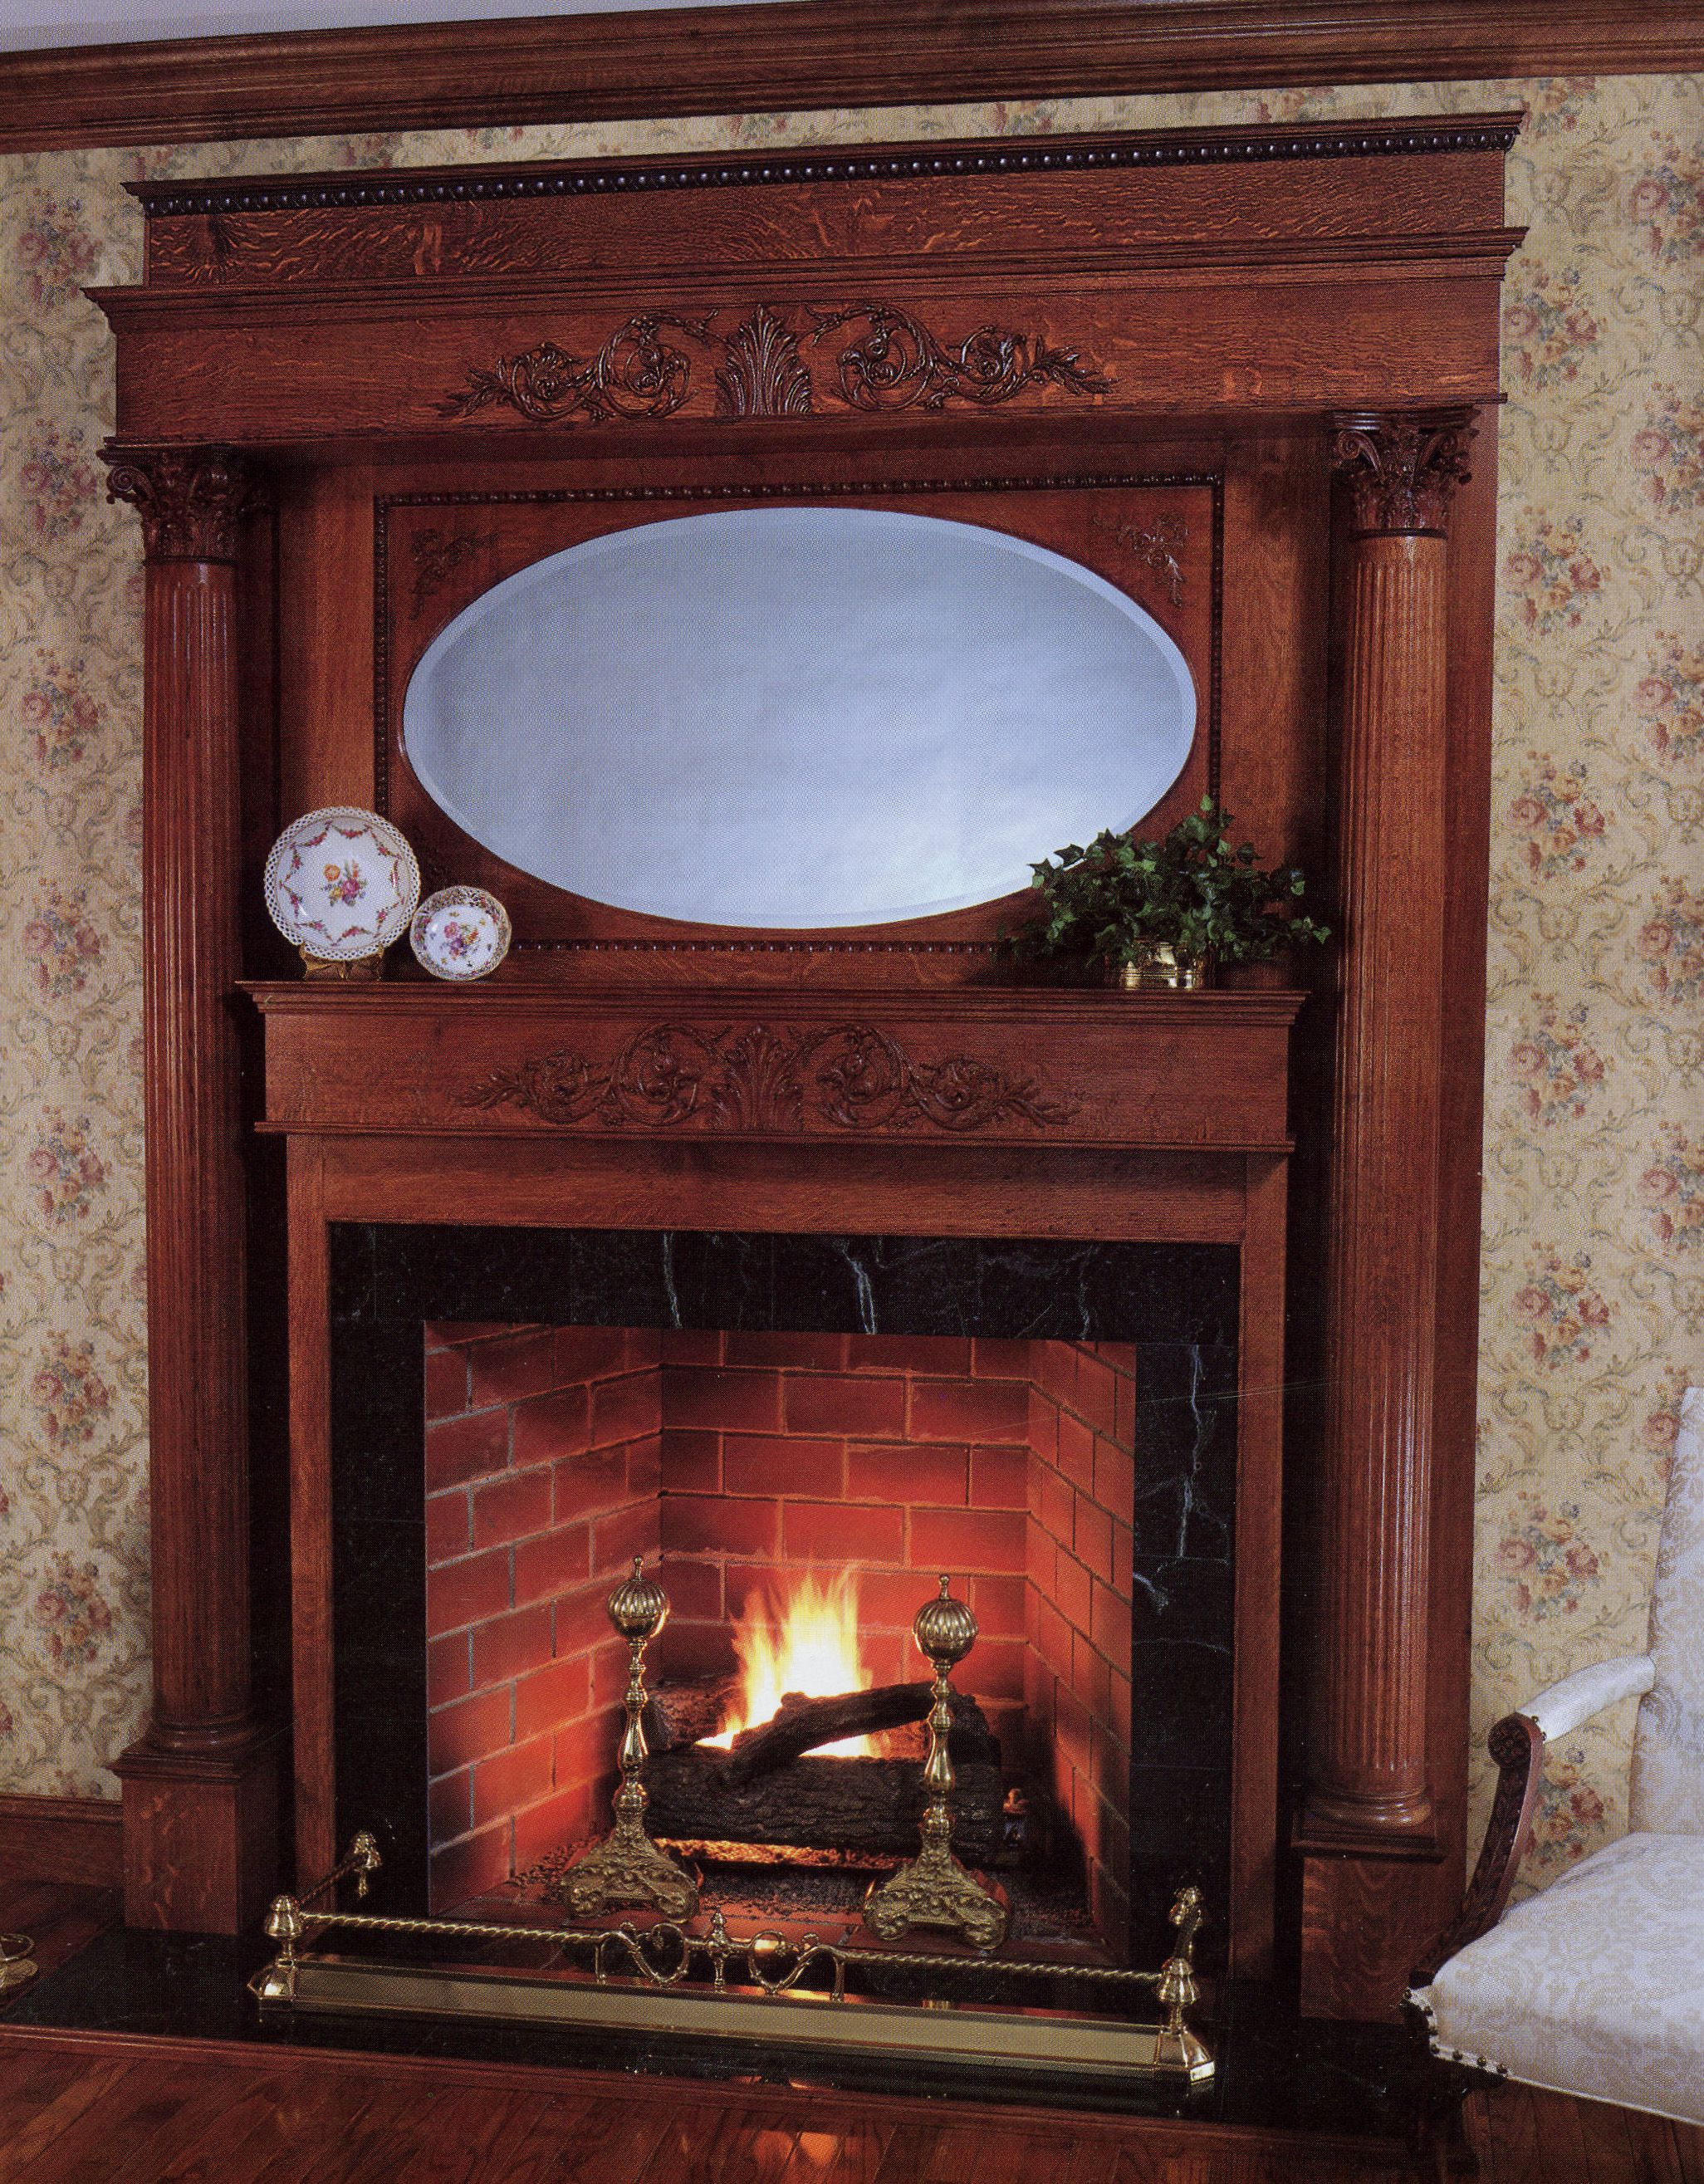 Inspiring Traditional Fireplace Mantel With Unique Wooden Panel And Great Oval Mirror And Beautiful White Floral Wallpaper And Antique Wooden Arm Chair Design For Rustic Home Interior Design